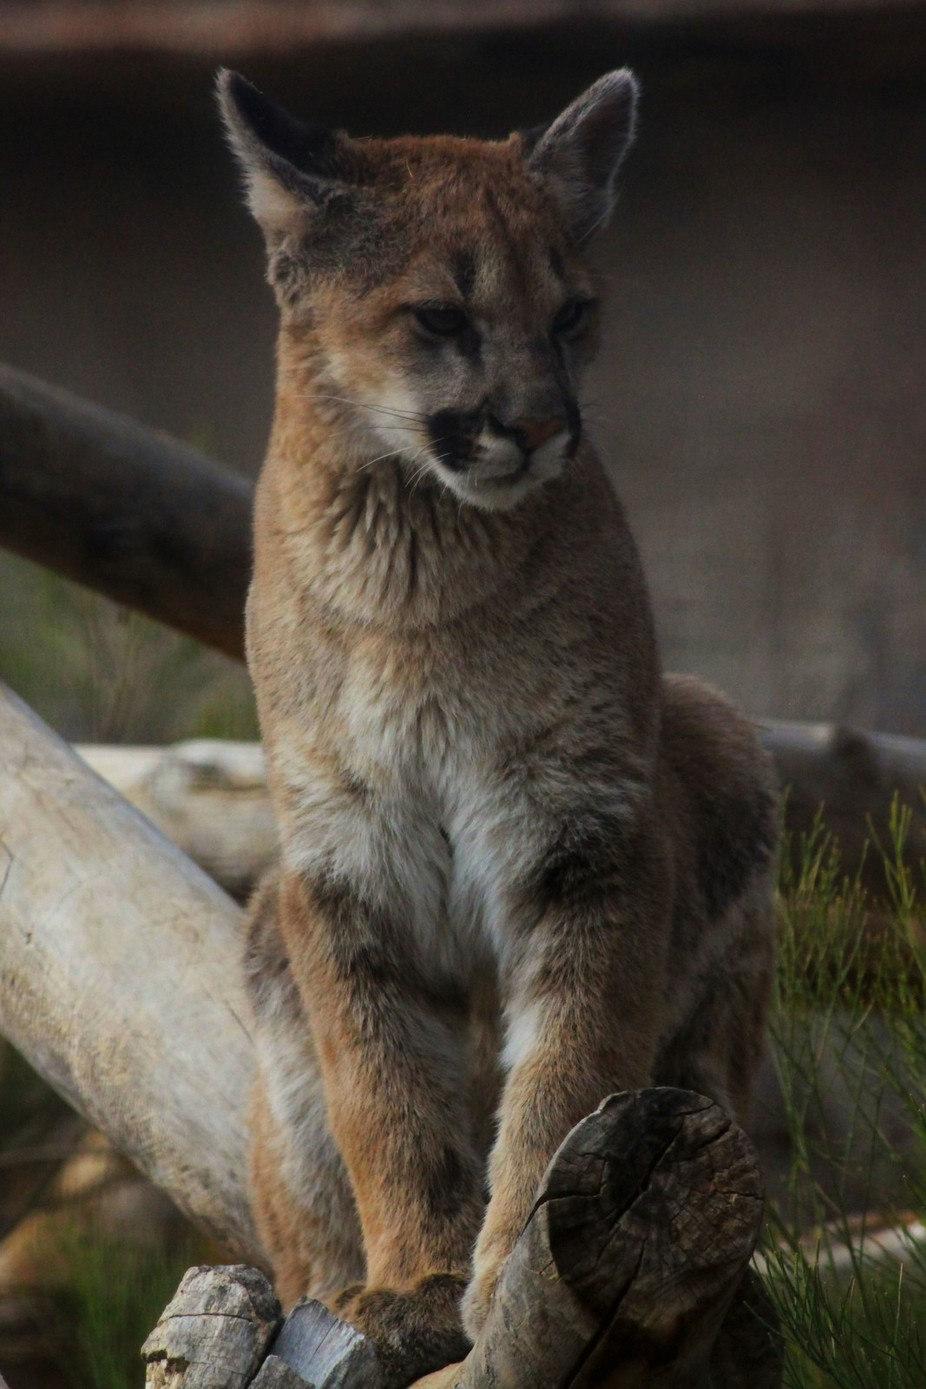 Capturing young animals is a treat especially wild young animals like this Puma